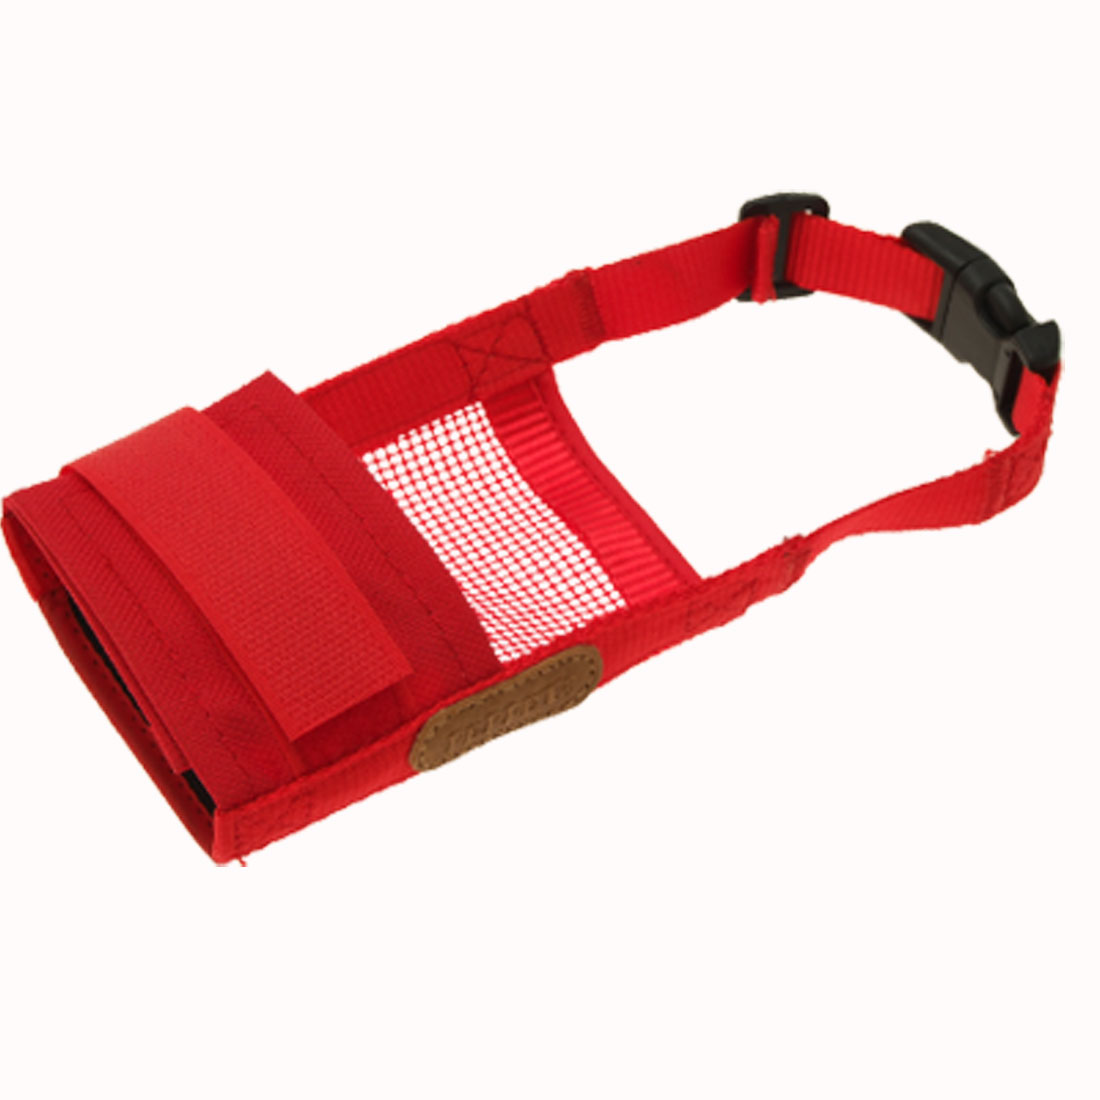 Size L Pet Dog Anti Bark Bite Chew Muzzle Red Soft Mesh Mask